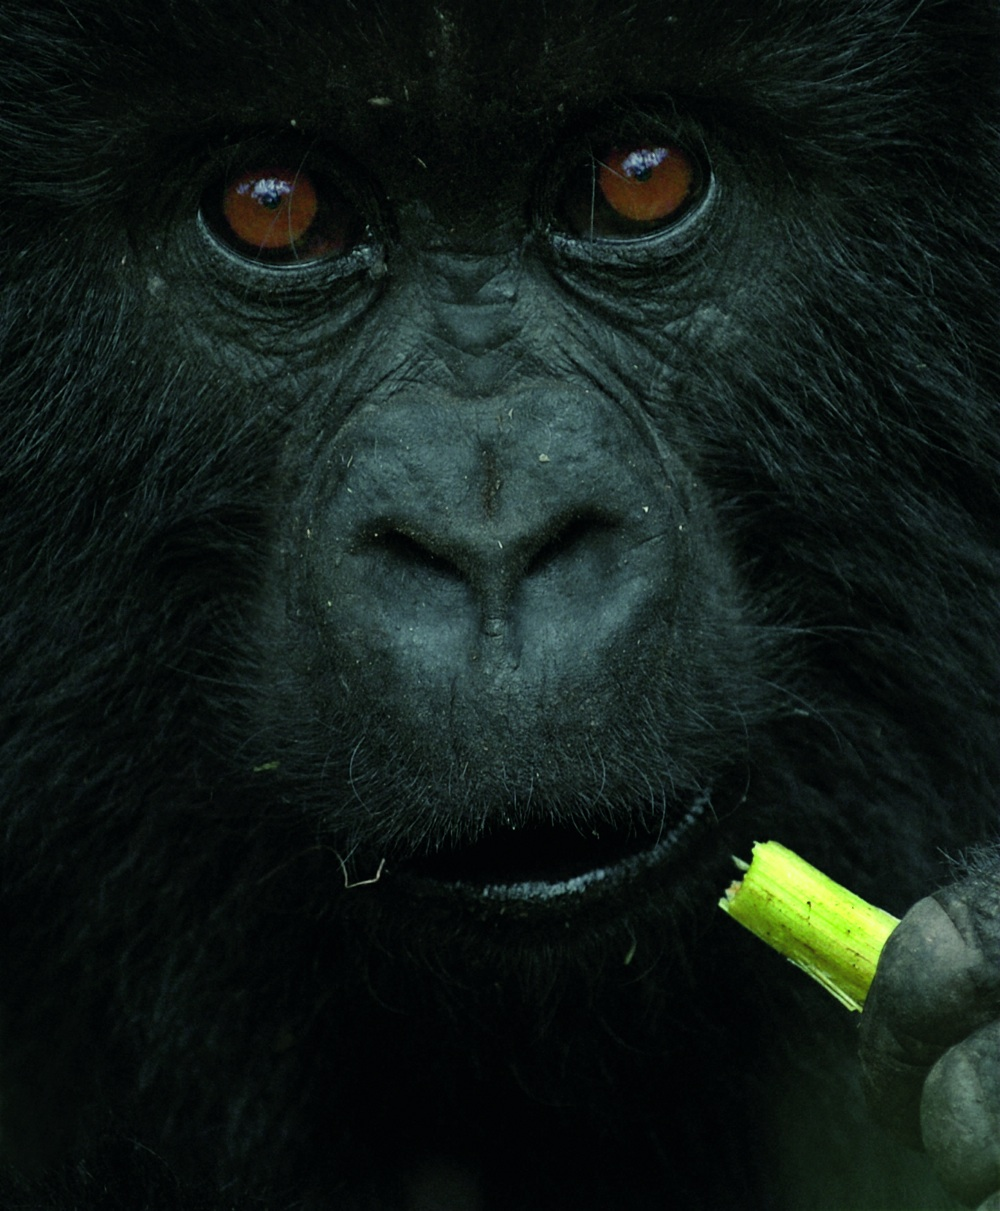 A juvenile mountain gorilla named Shirimpumu, from Rwanda's Parc National des Volcans, chews on wild mountain celery. From Mountain Gorillas, by Gene Eckhart and Annette Lanjouw, published in 2008 by The Johns Hopkins University Press. Photos reproduced by permission of the photographer geneeckhart.com and the publisher. All rights reserved.